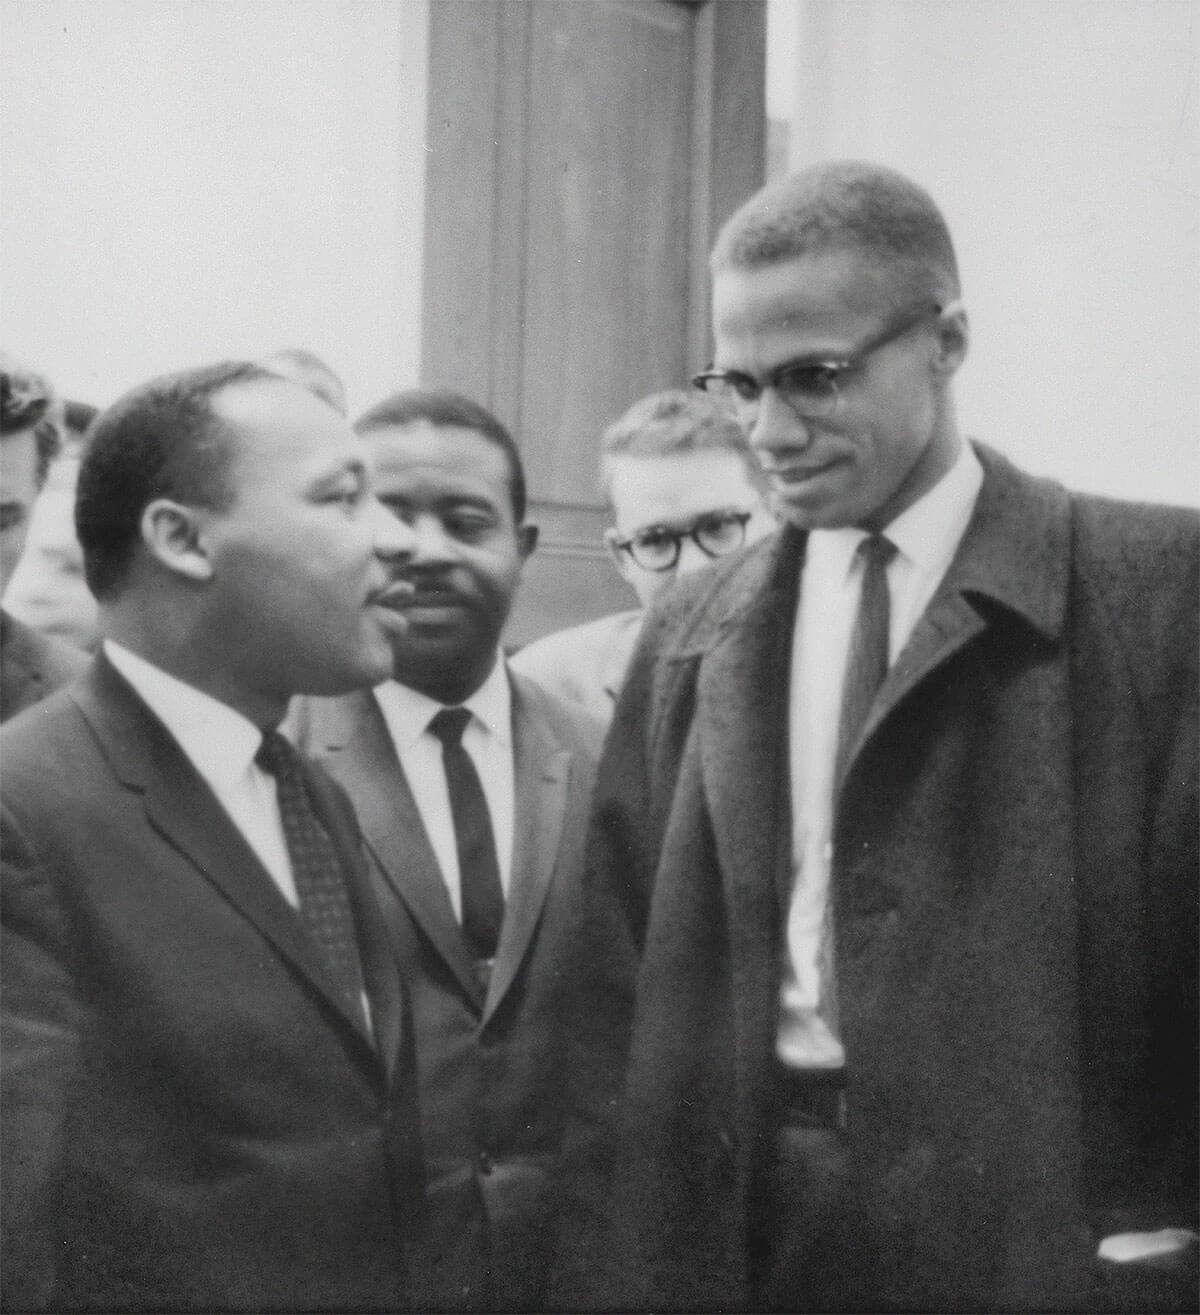 Rev. Dr. Martin Luther King, Jr. and My Asian American Identity